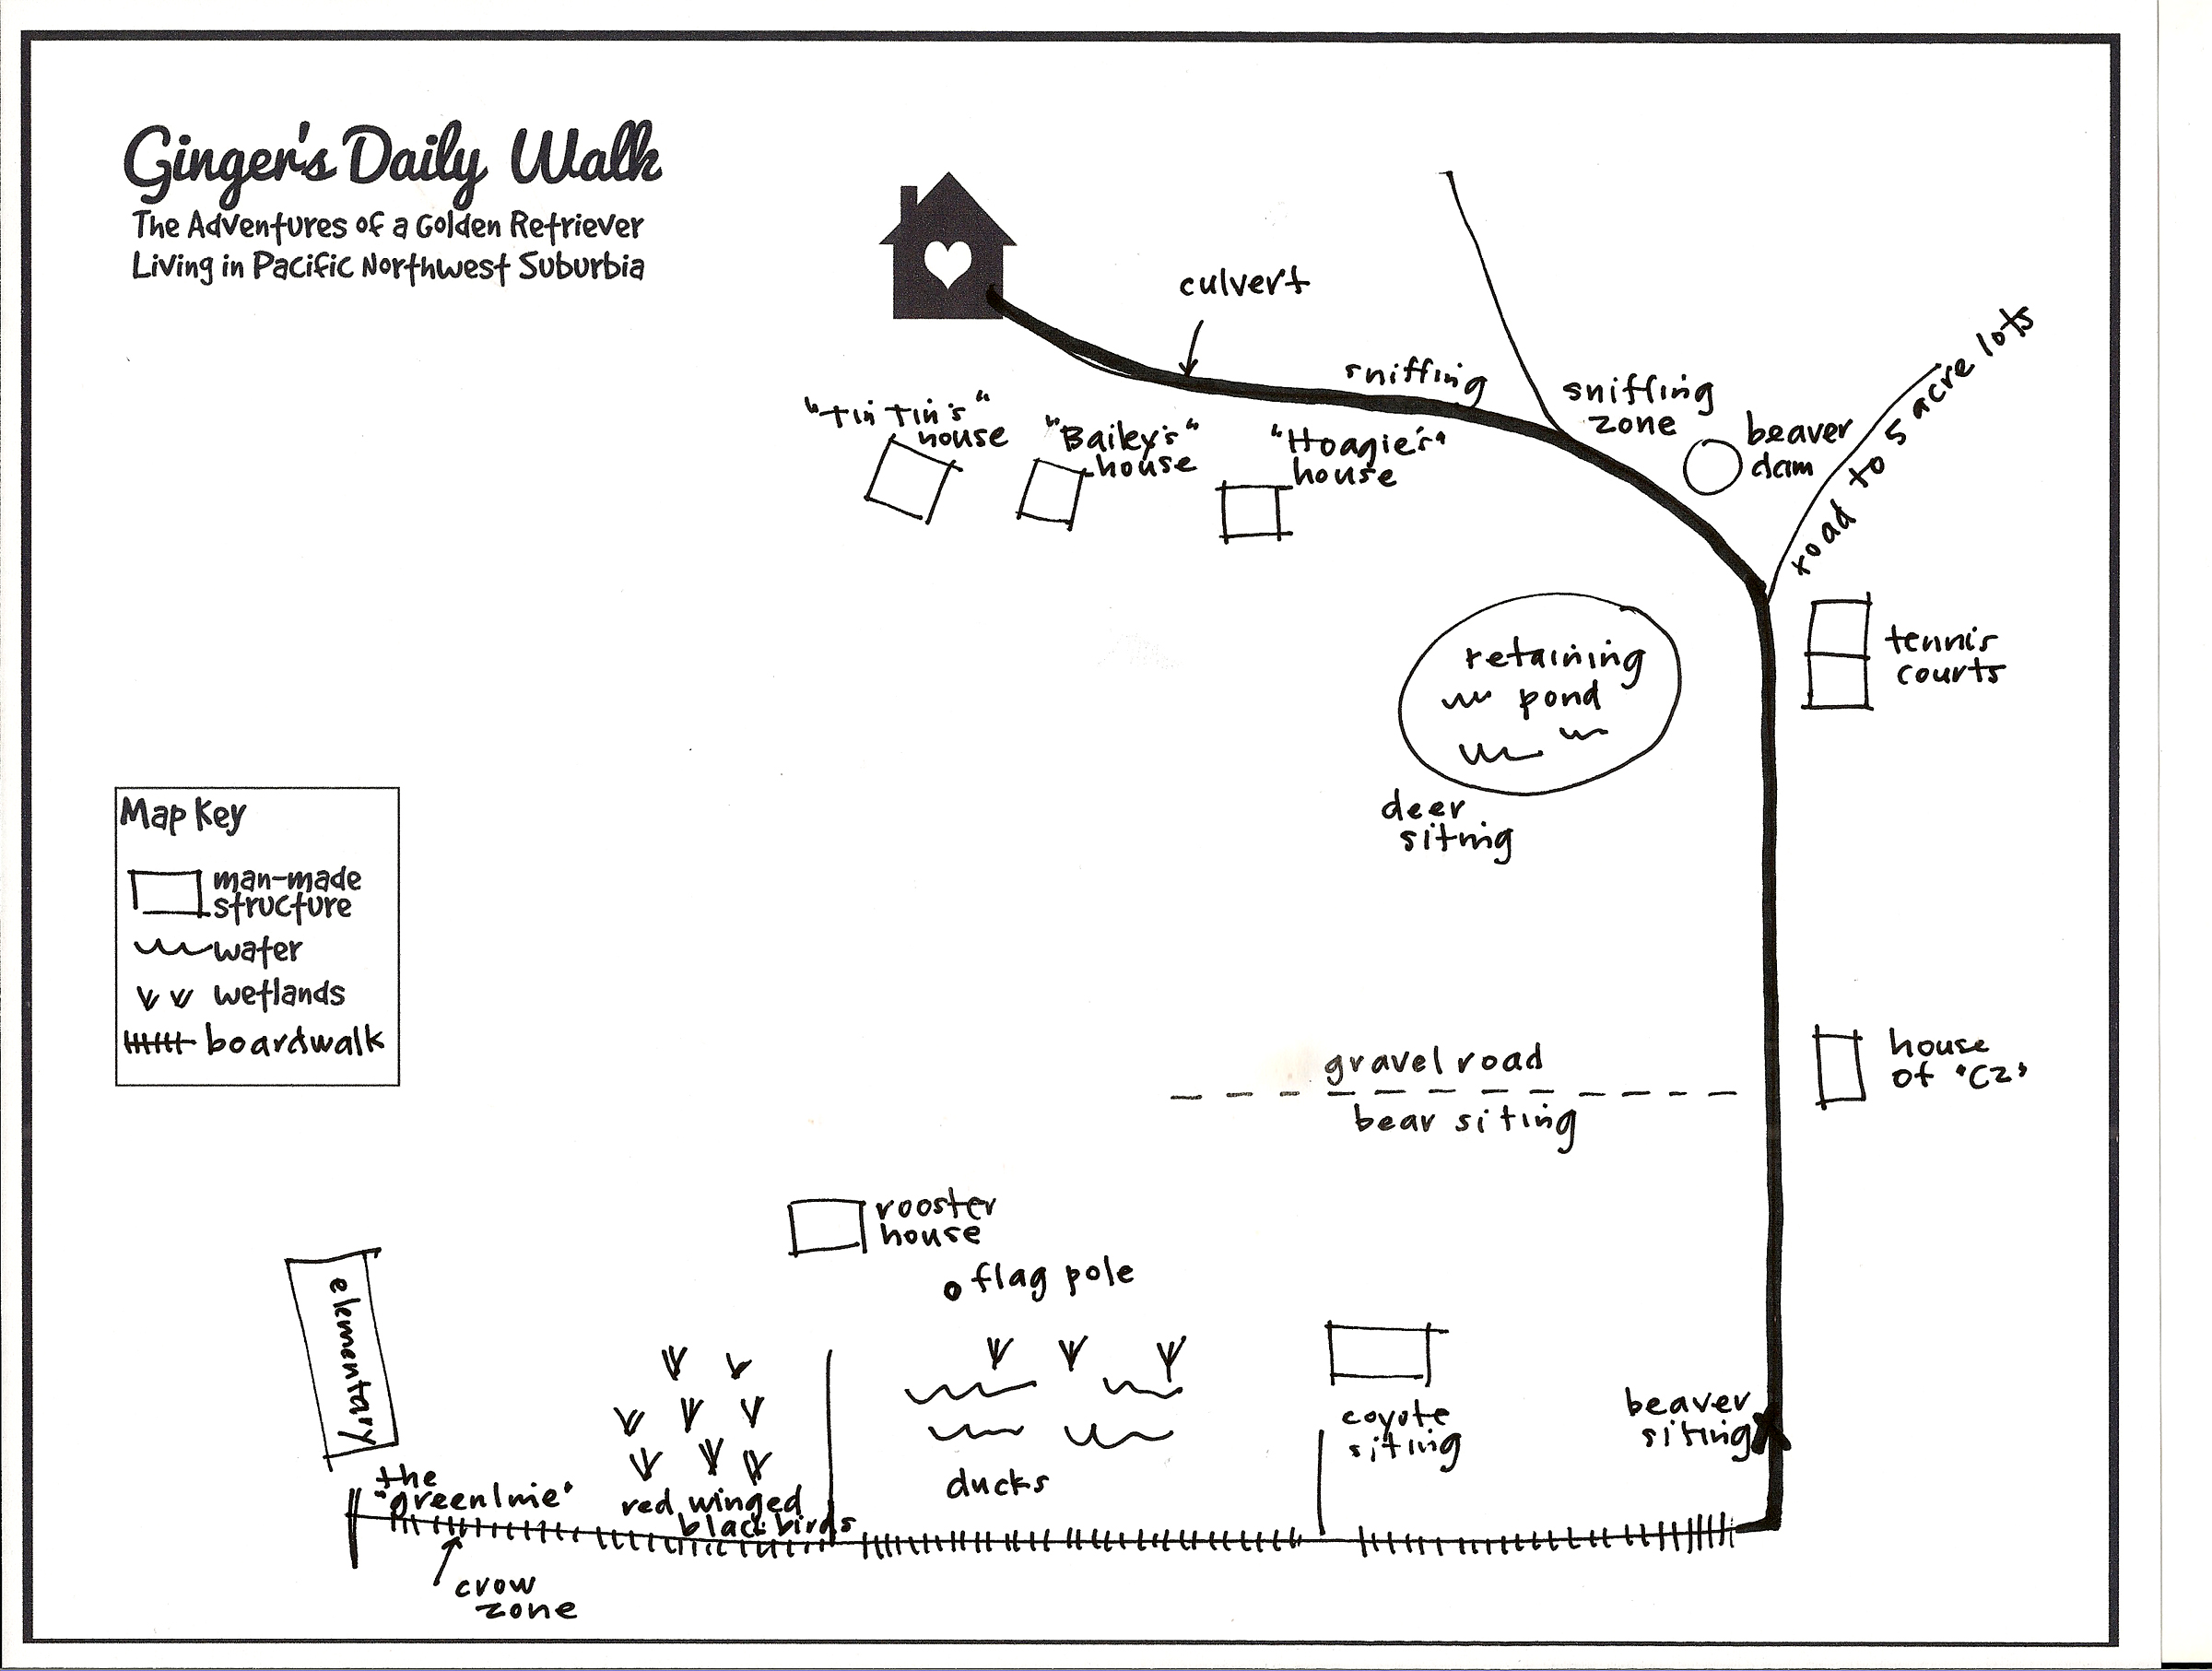 Ginger's Daily Walk - Adventures of a Golden Retriever in Pacific NW Suburbia - image 18 - student project